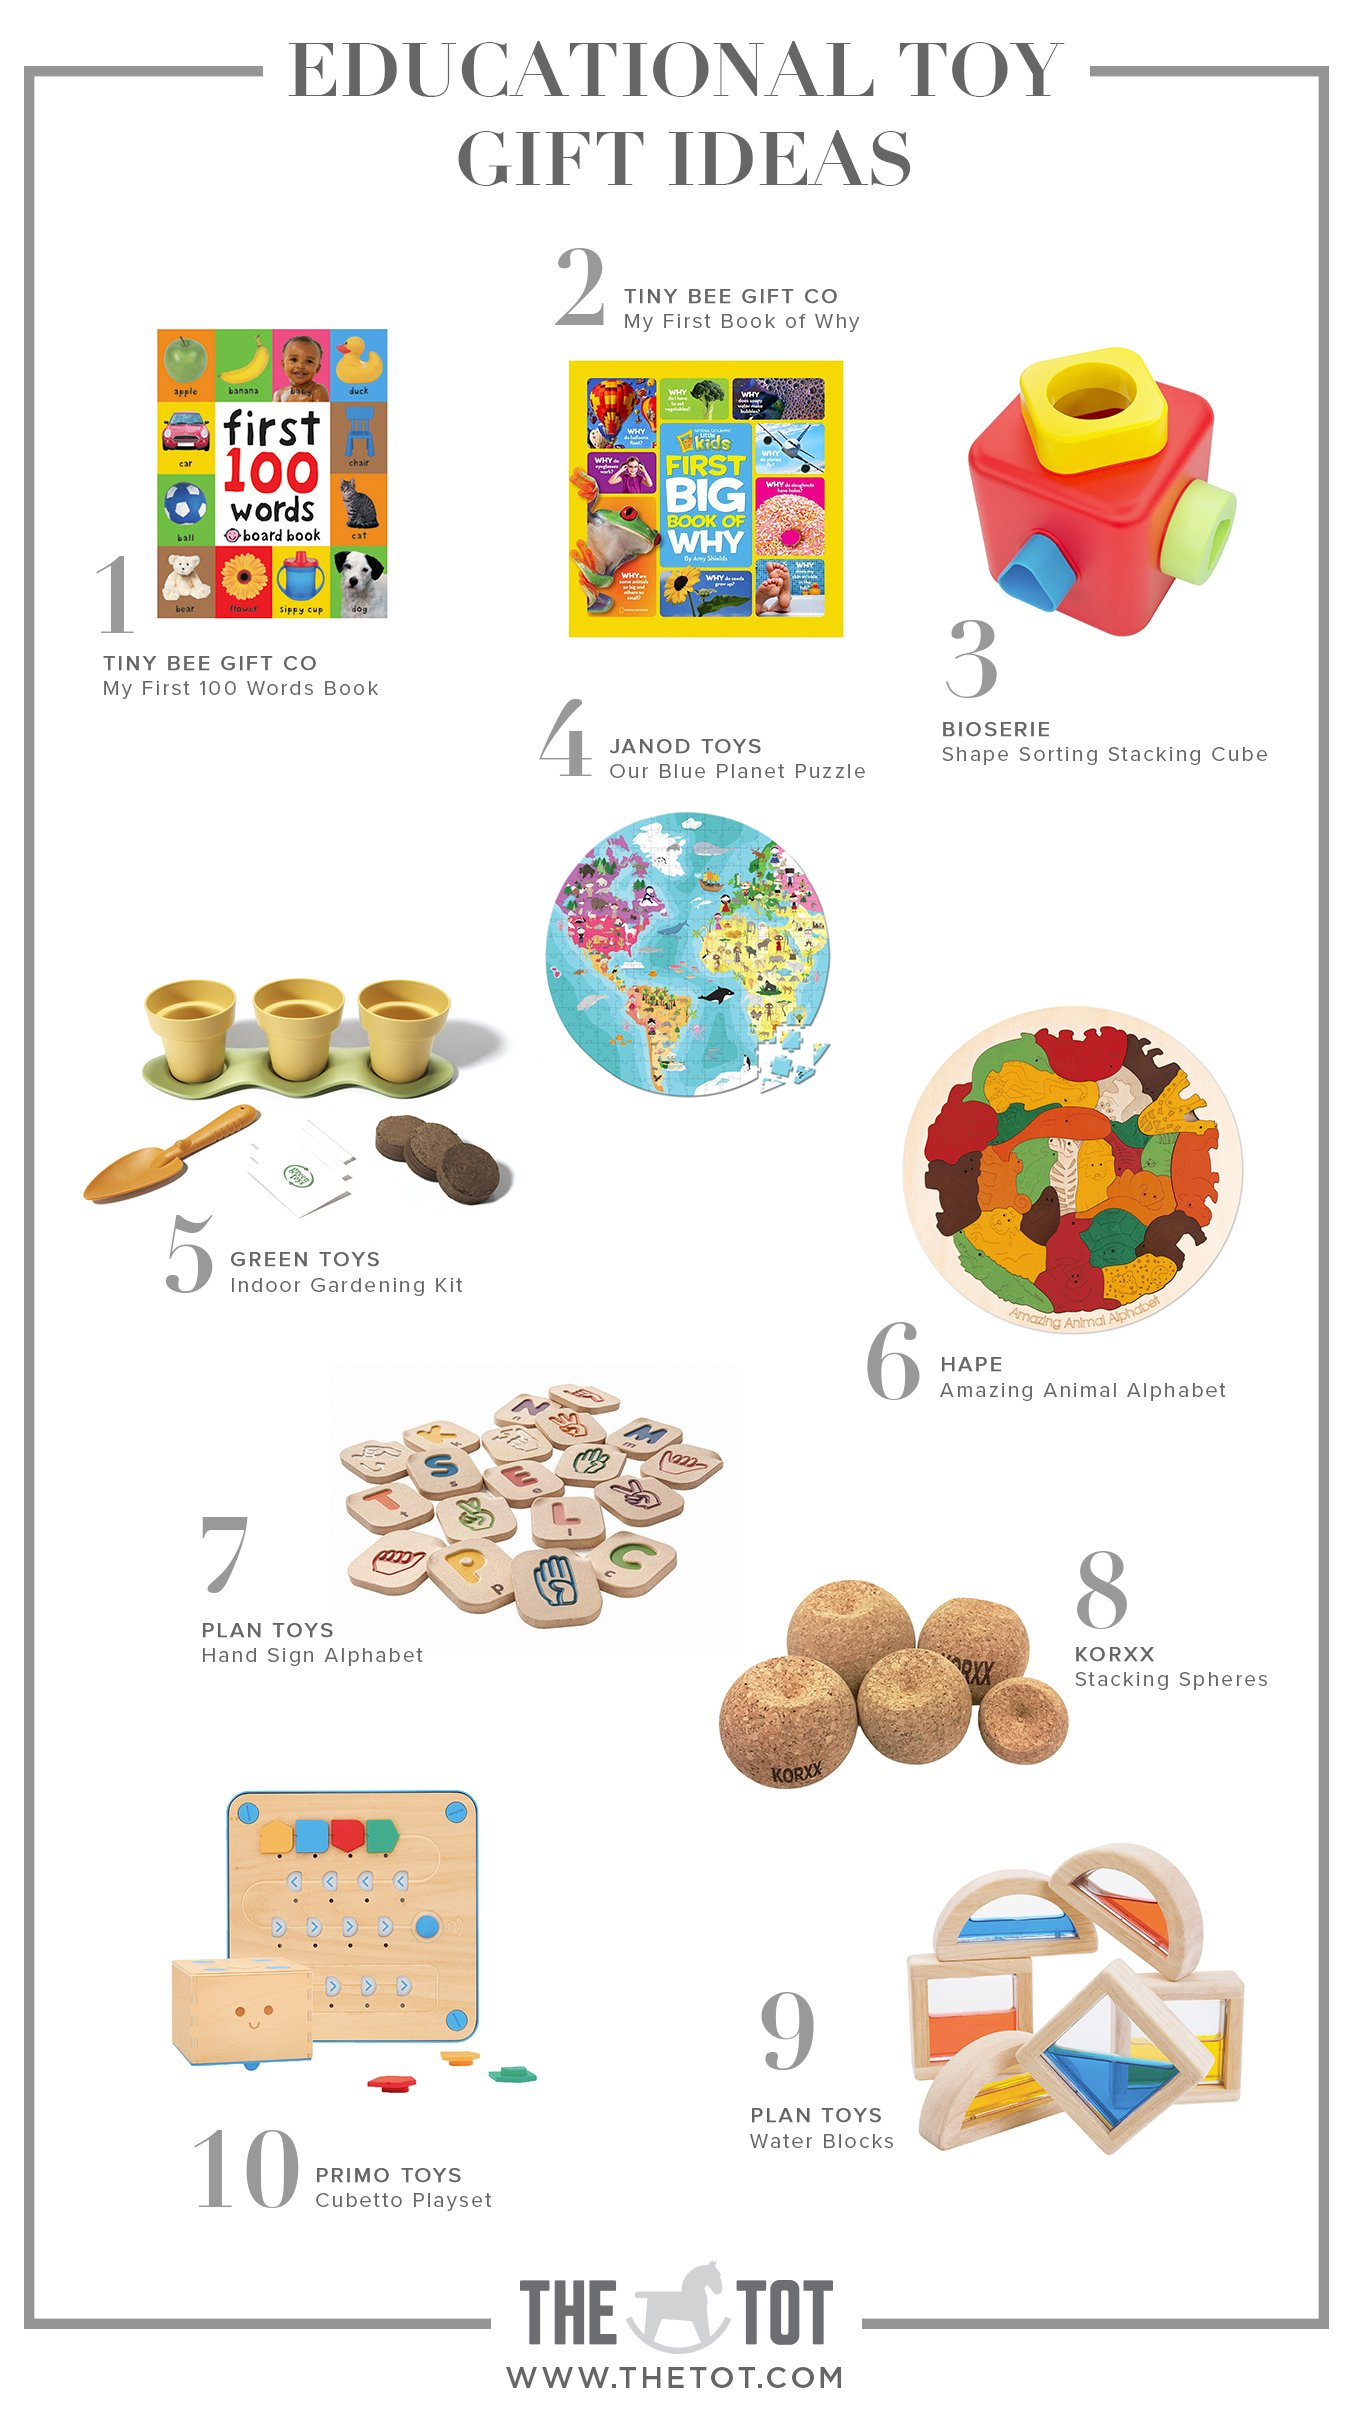 A guide to educational gifts thetot 1 of 10 workwithnaturefo